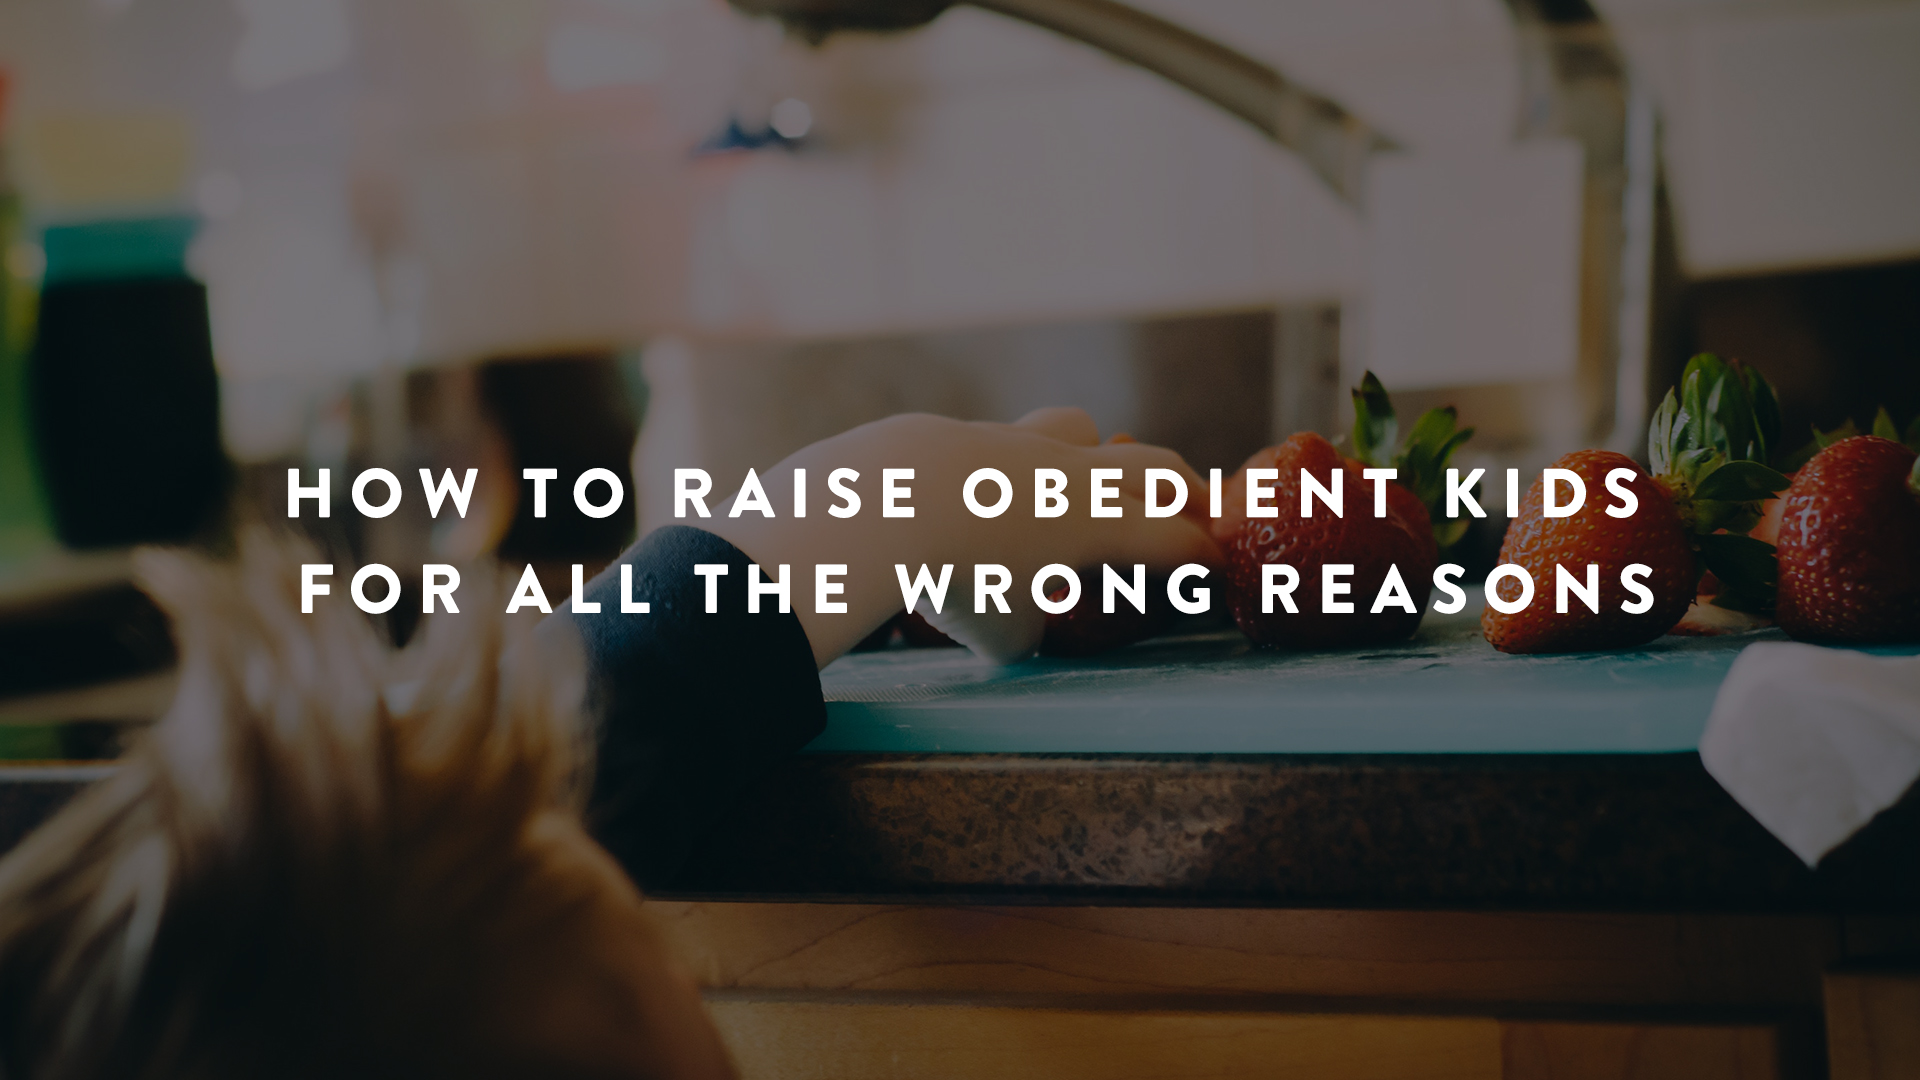 How to Raise Obedient Kids - For All the Wrong Reasons | Parent Cue Blog